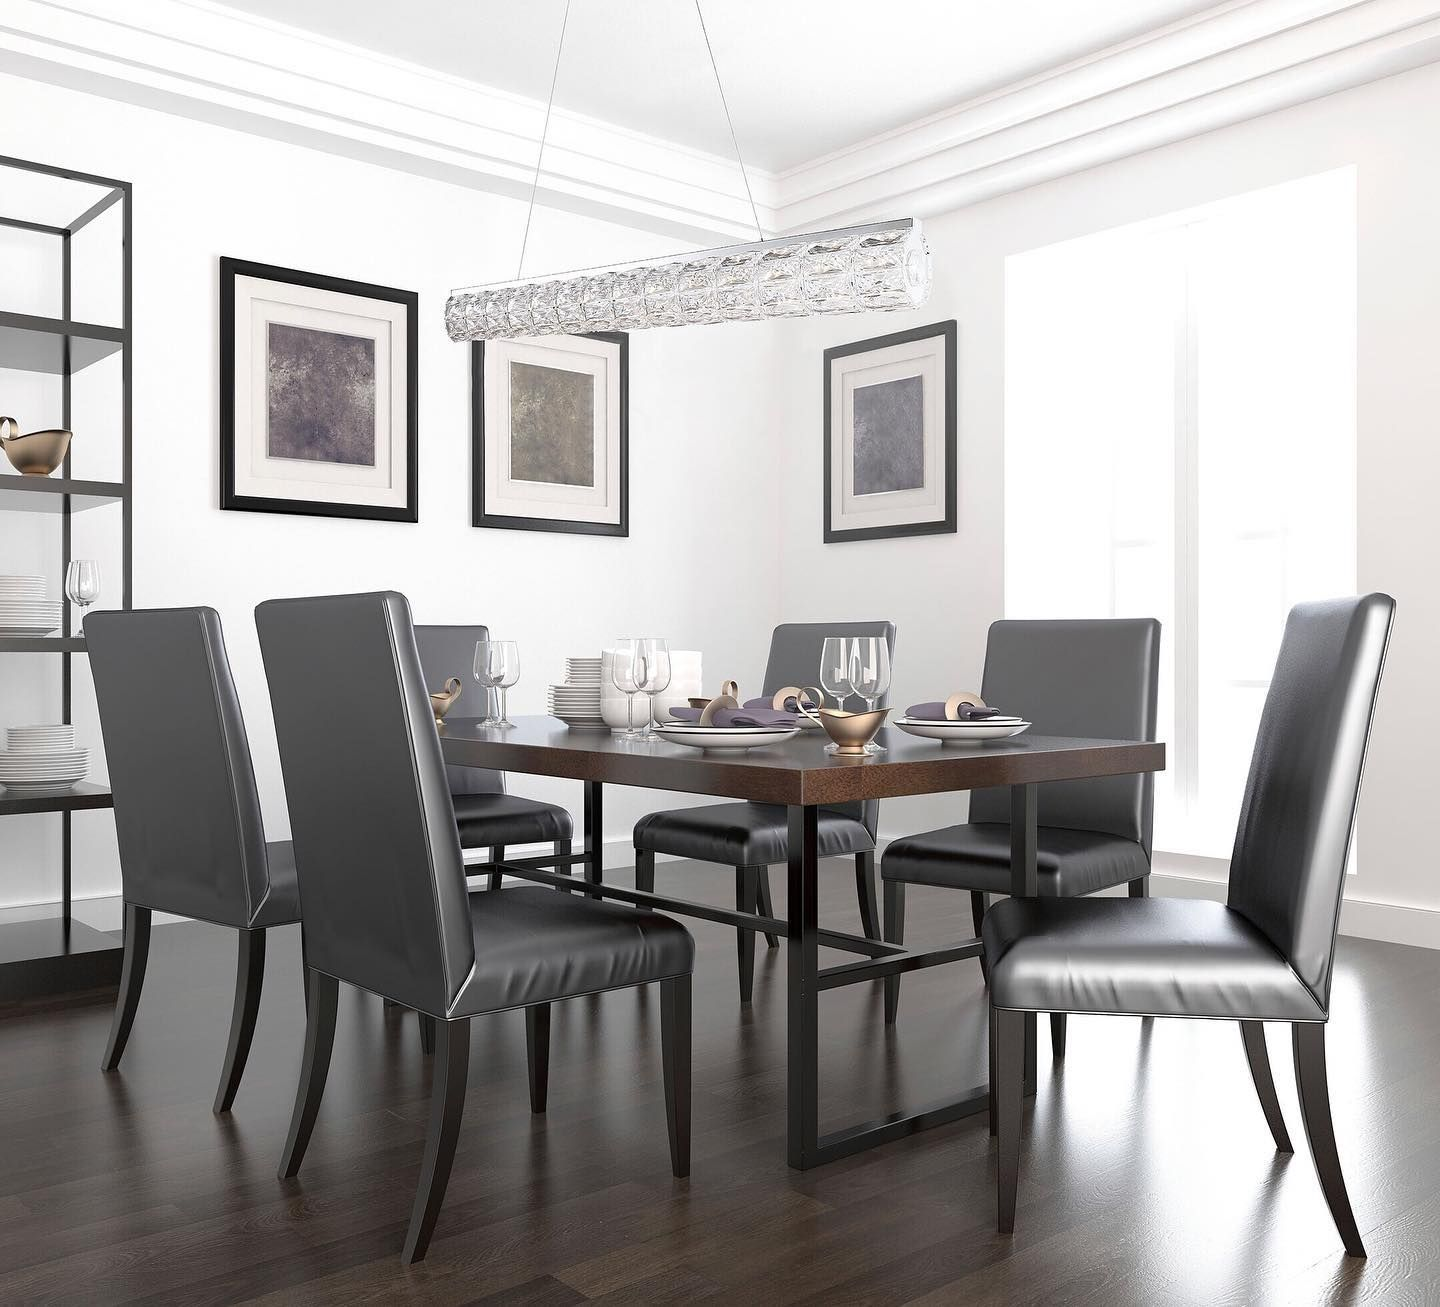 Renovating Your Dining Room The Lighting Needs More Consideration Than You Might Think You Need Something That C In 2020 Interior Styling Dining Lighting Home Decor